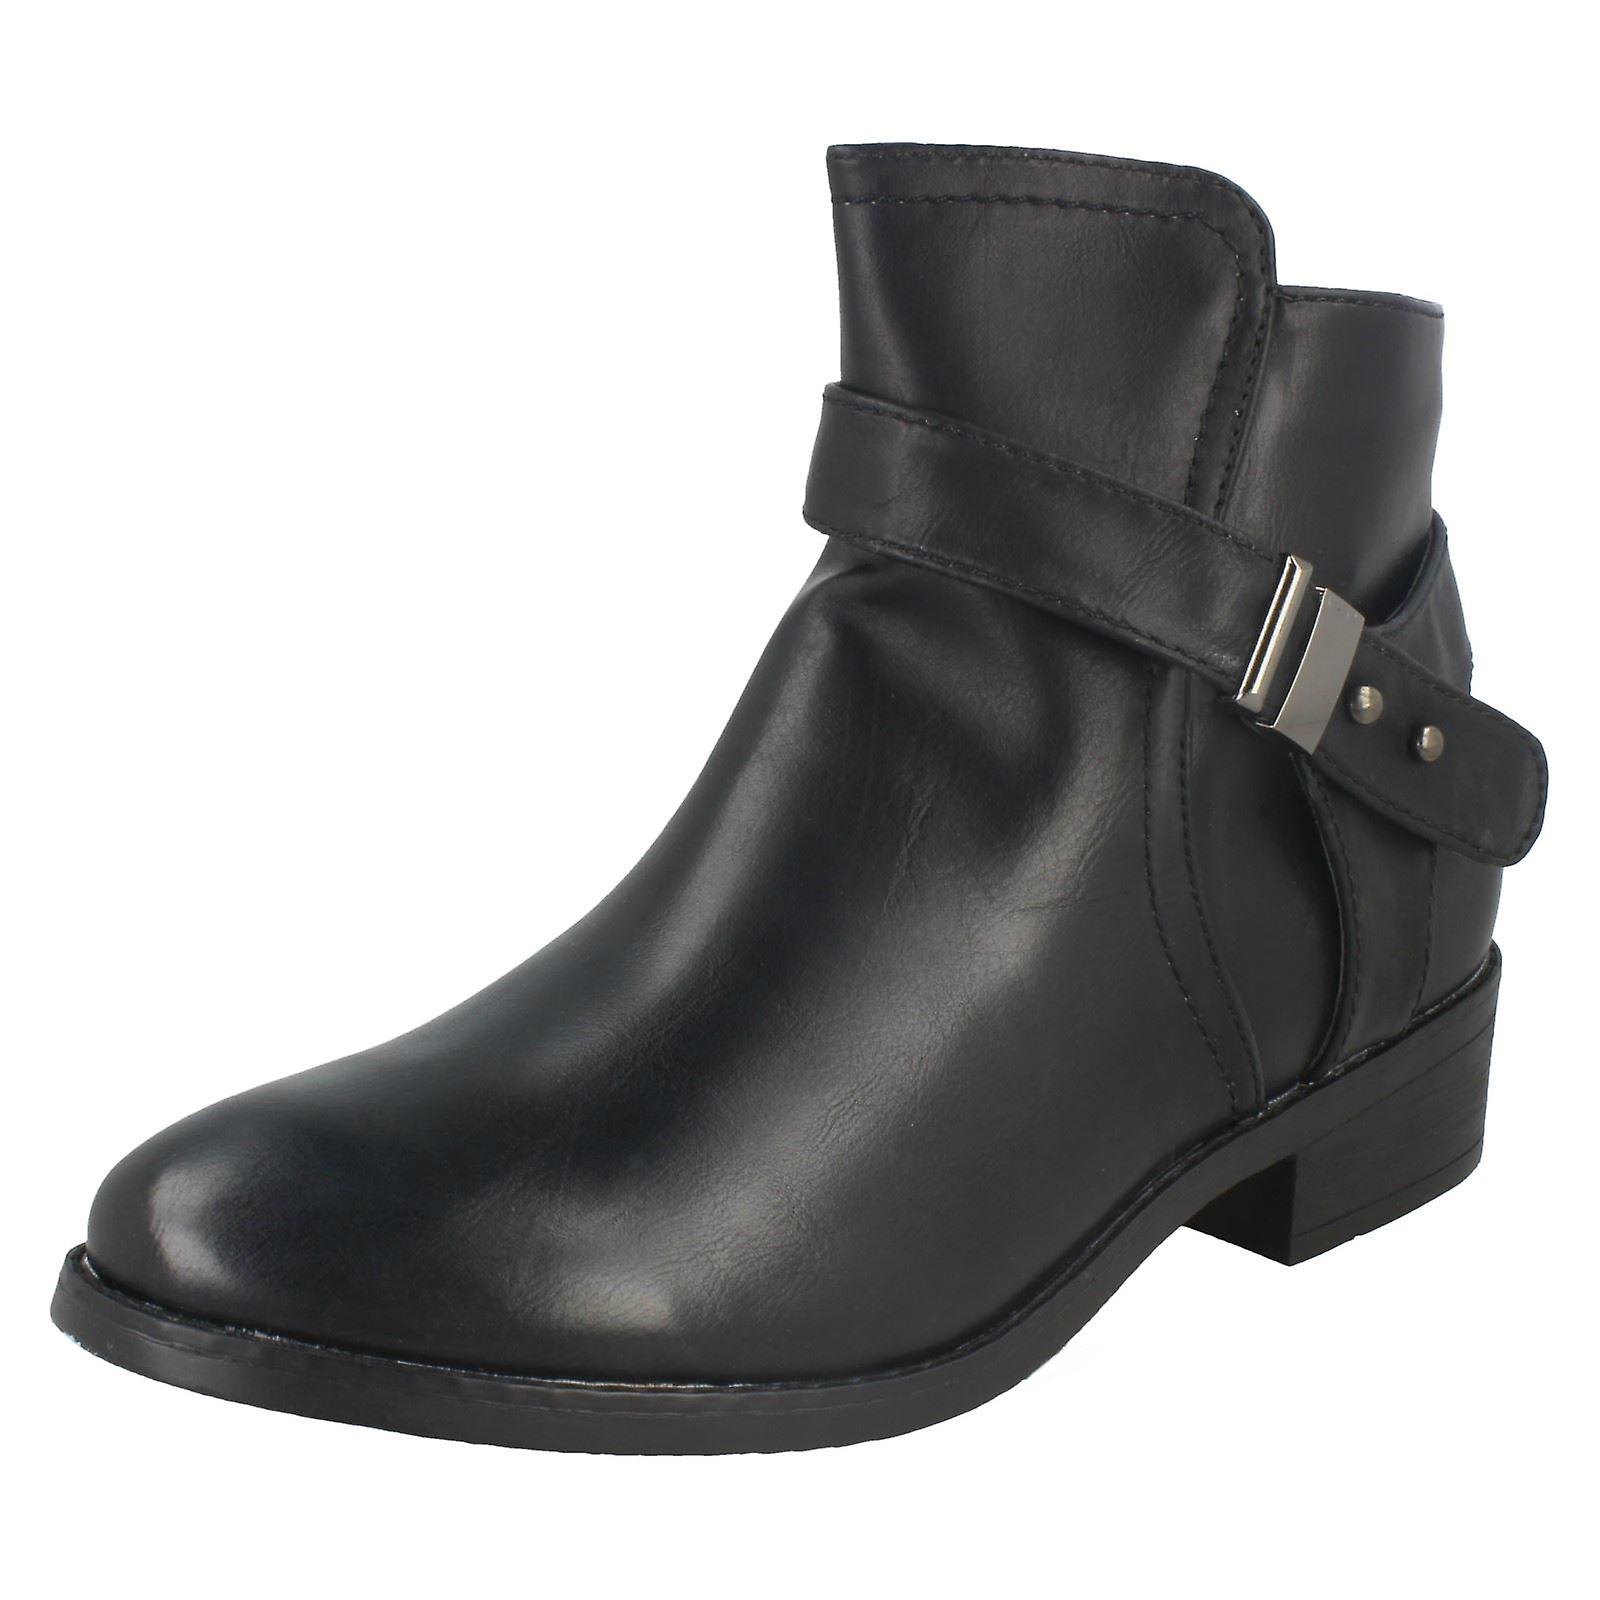 Ladies Spot On Low Heeled Ankle Boots F50328 9QRO4